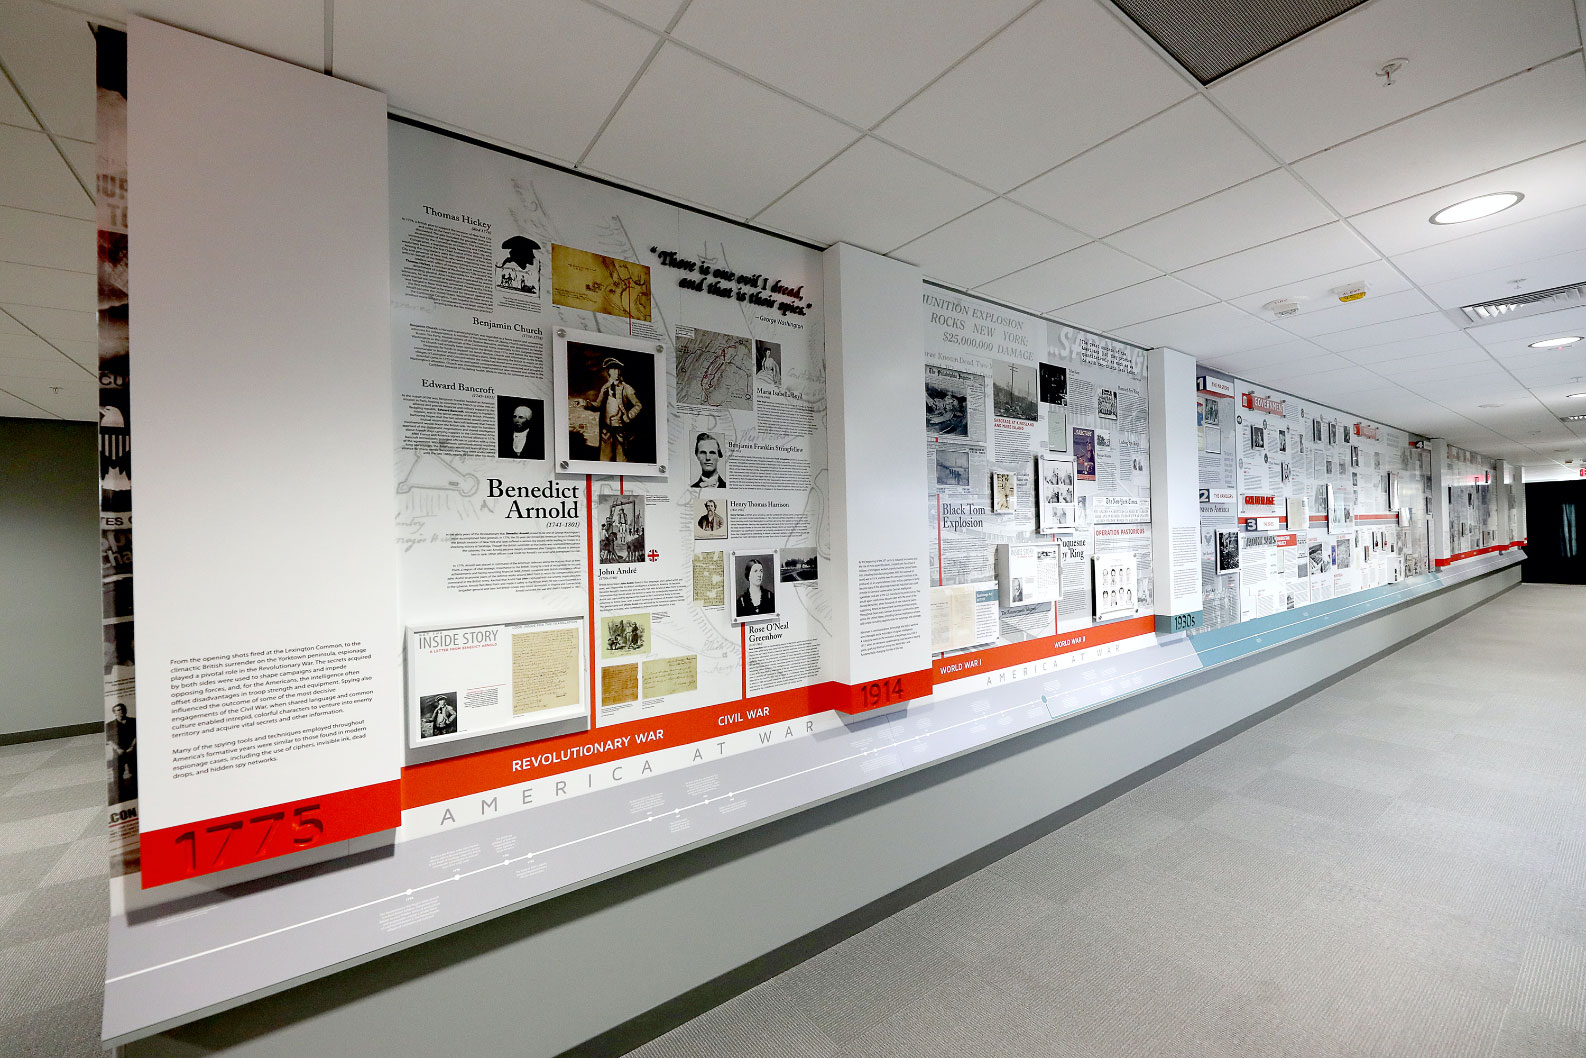 The Wall of Spies special exhibit housed at the Intelligence Community Campus Bethesda